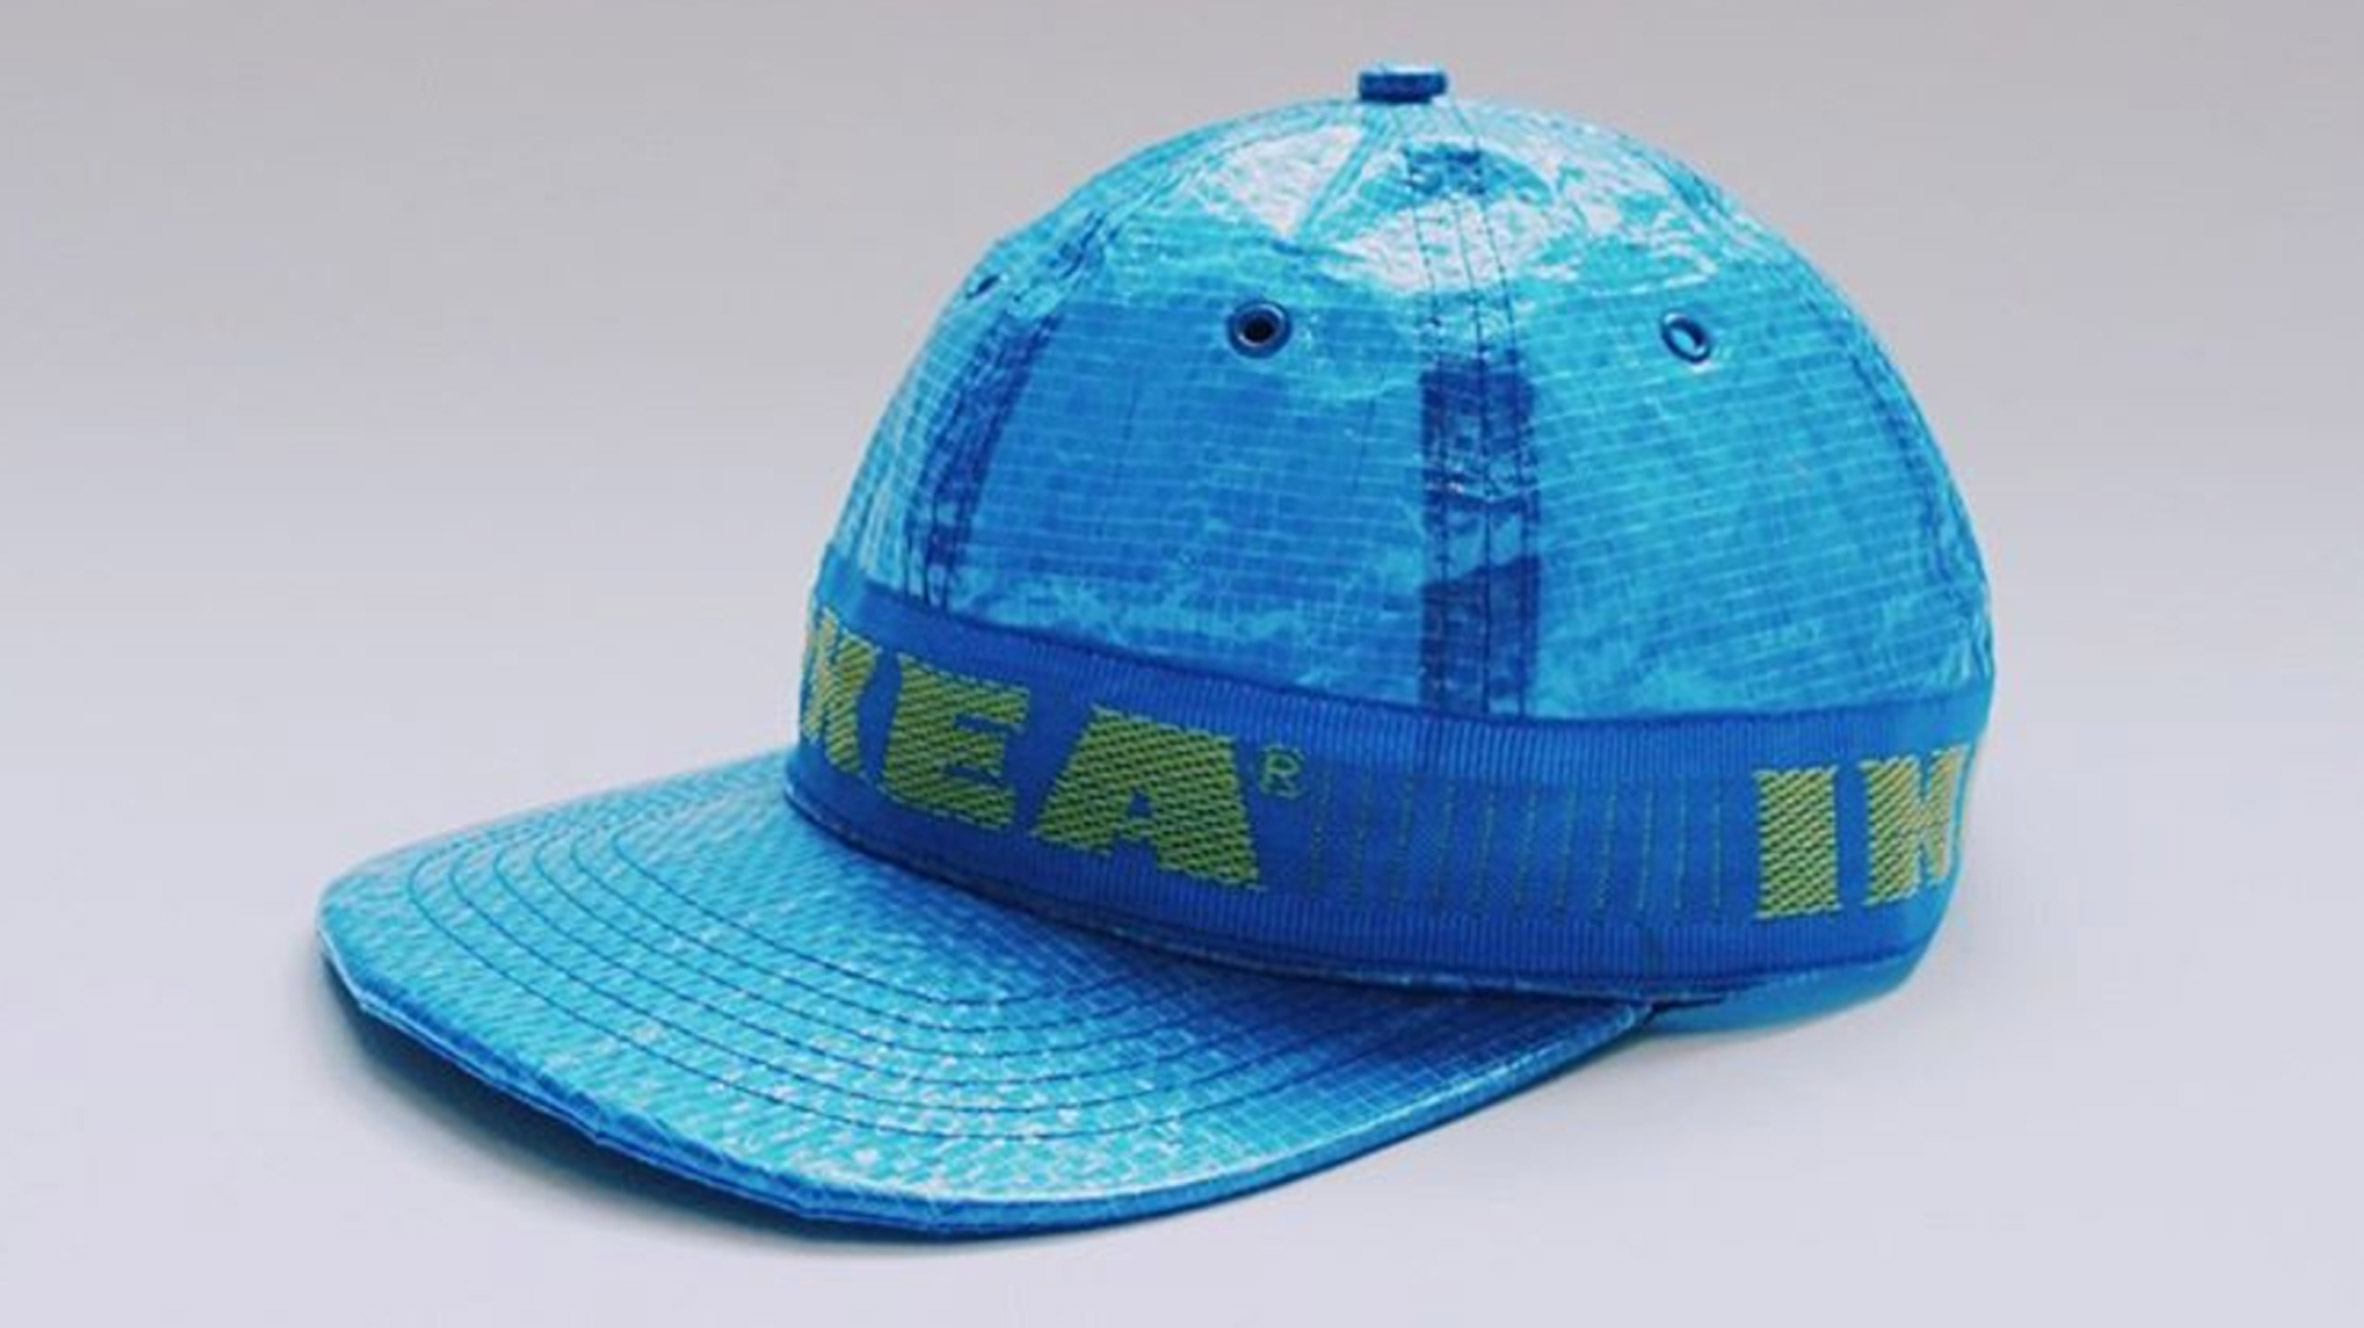 IKEAu0027s Blue Bag Has Been Reimagined As A $38 Baseball Hat